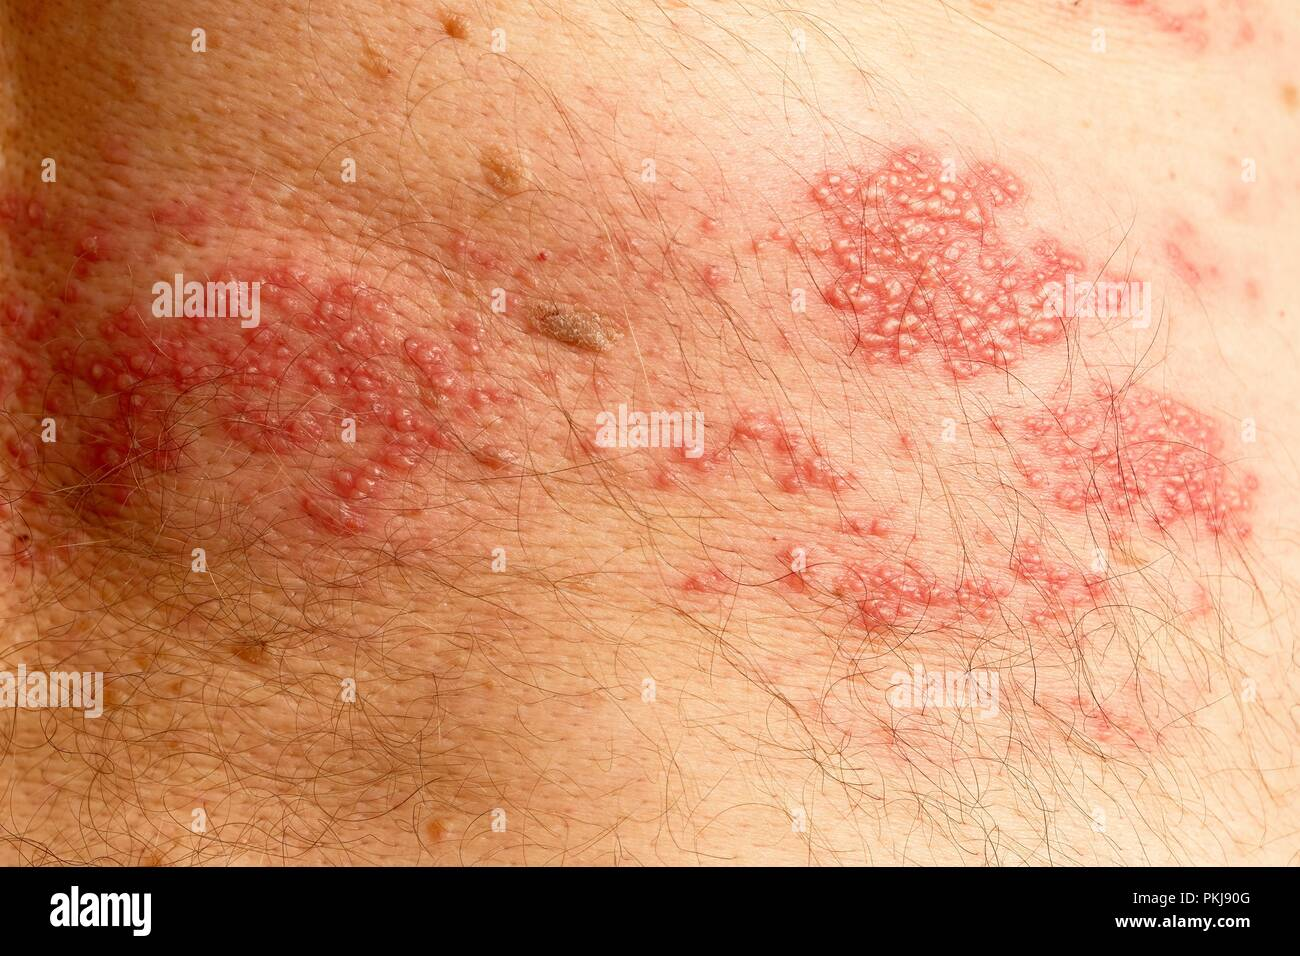 Over 50s male showing the classic rash associated with Shingles, starting at the spine and spreading across one side of the body only. - Stock Image